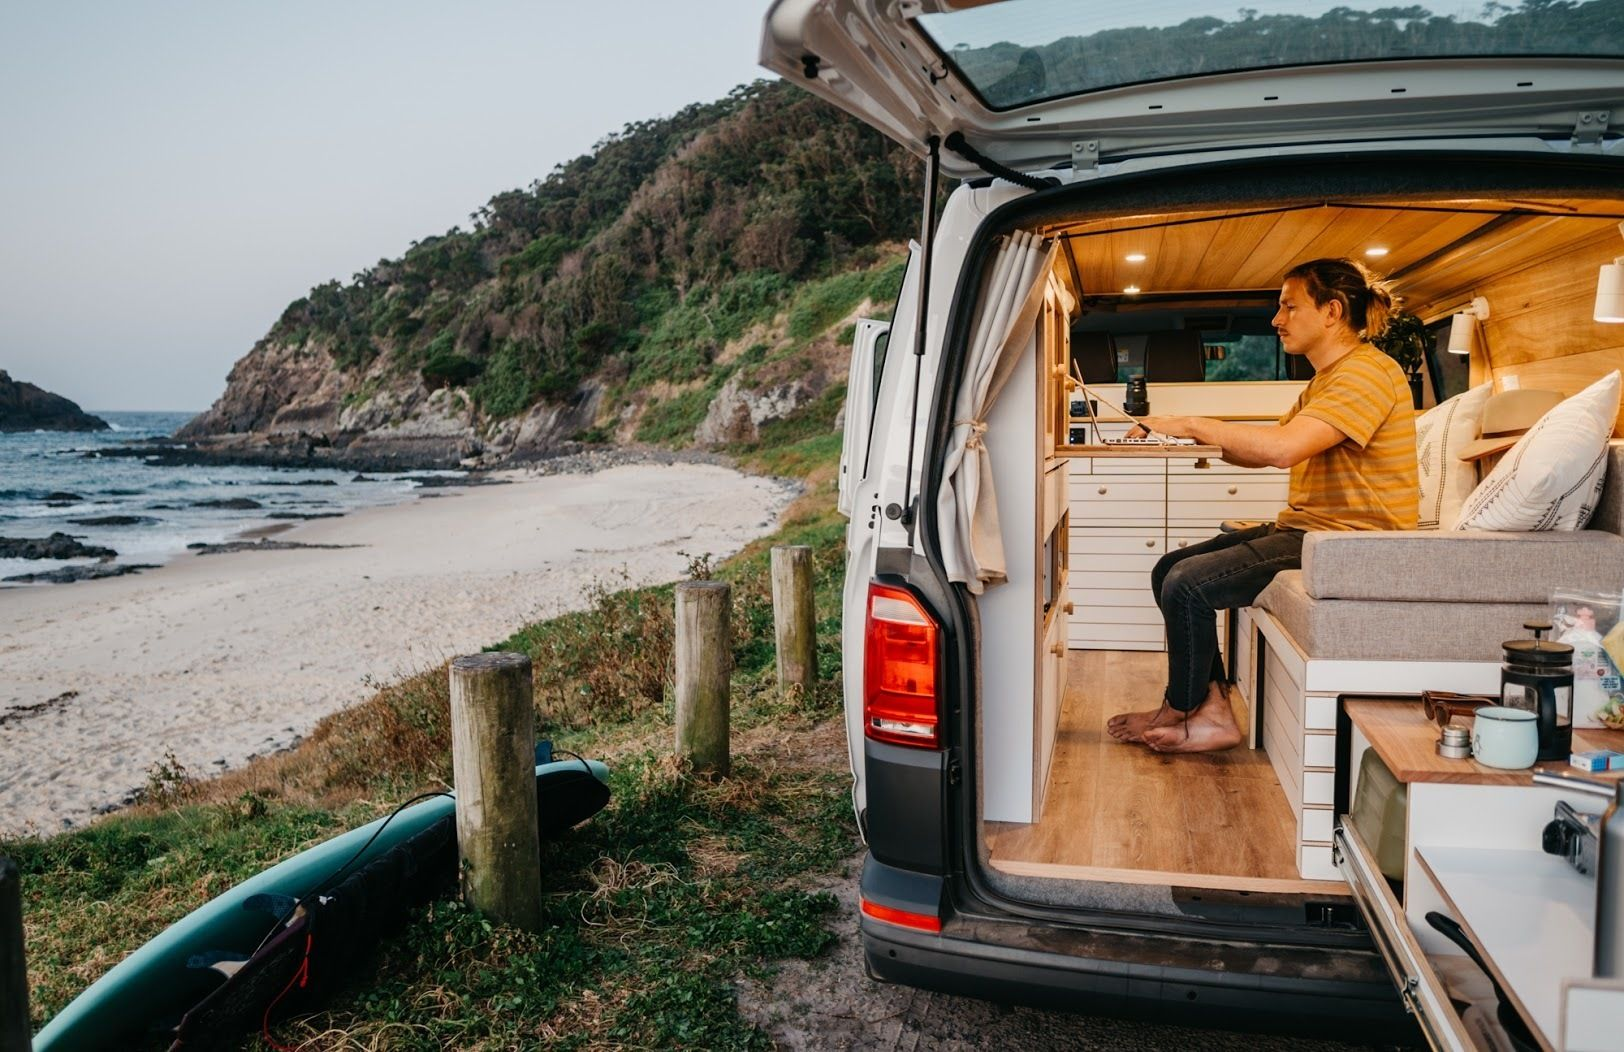 Take Your Work On The Road And Live The Van Life With Camplify